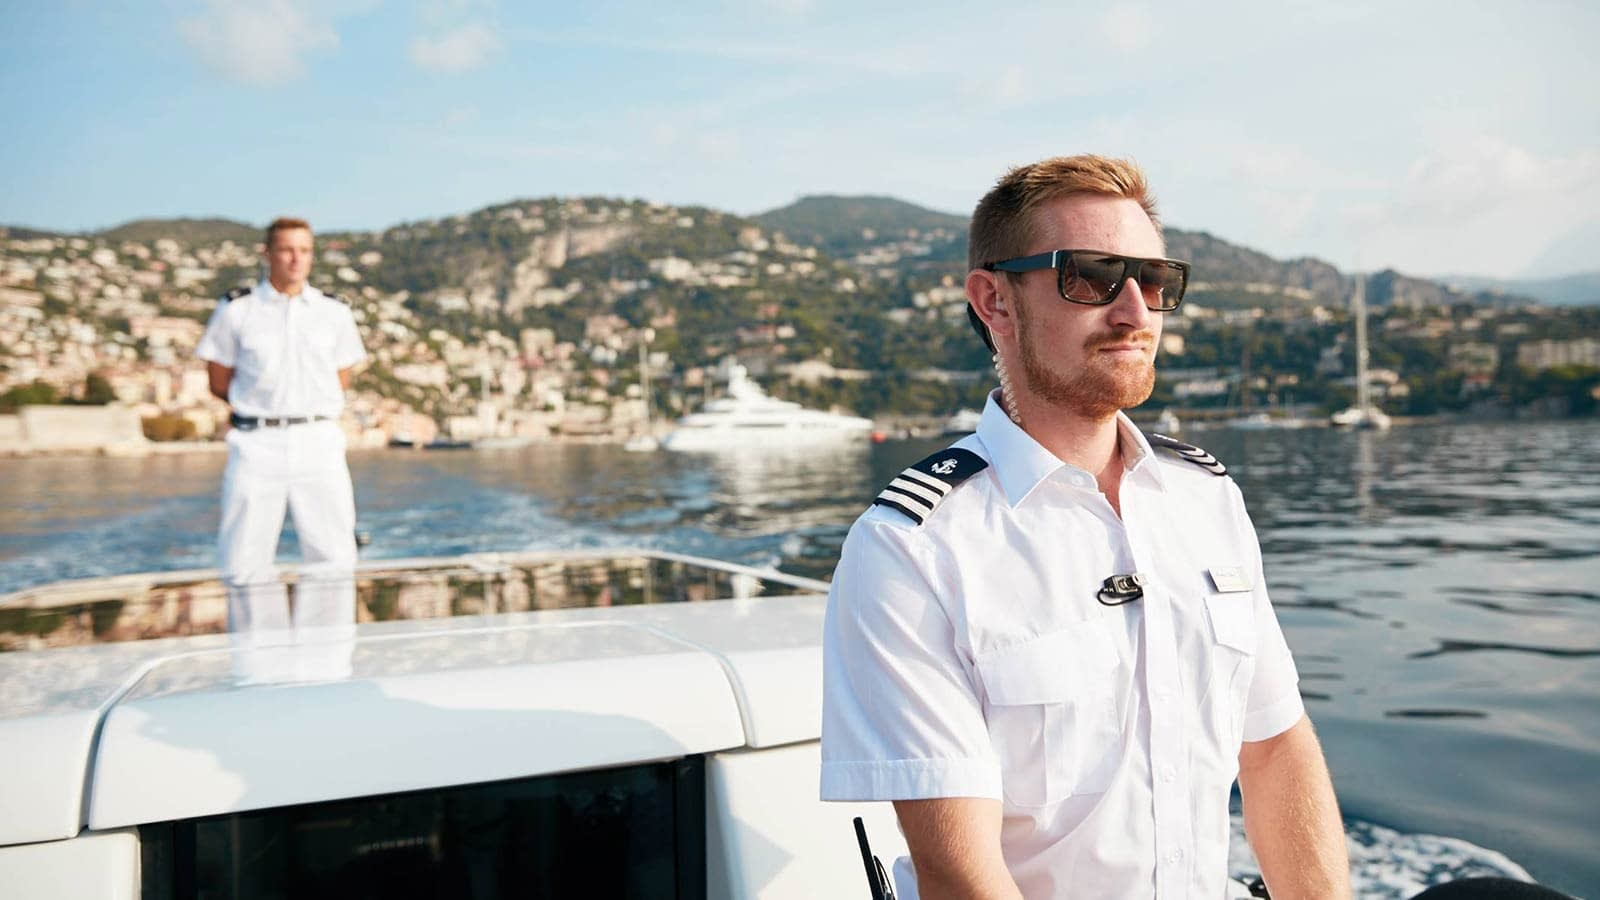 The role of a Superyacht Interior Manager by SCS Yachting